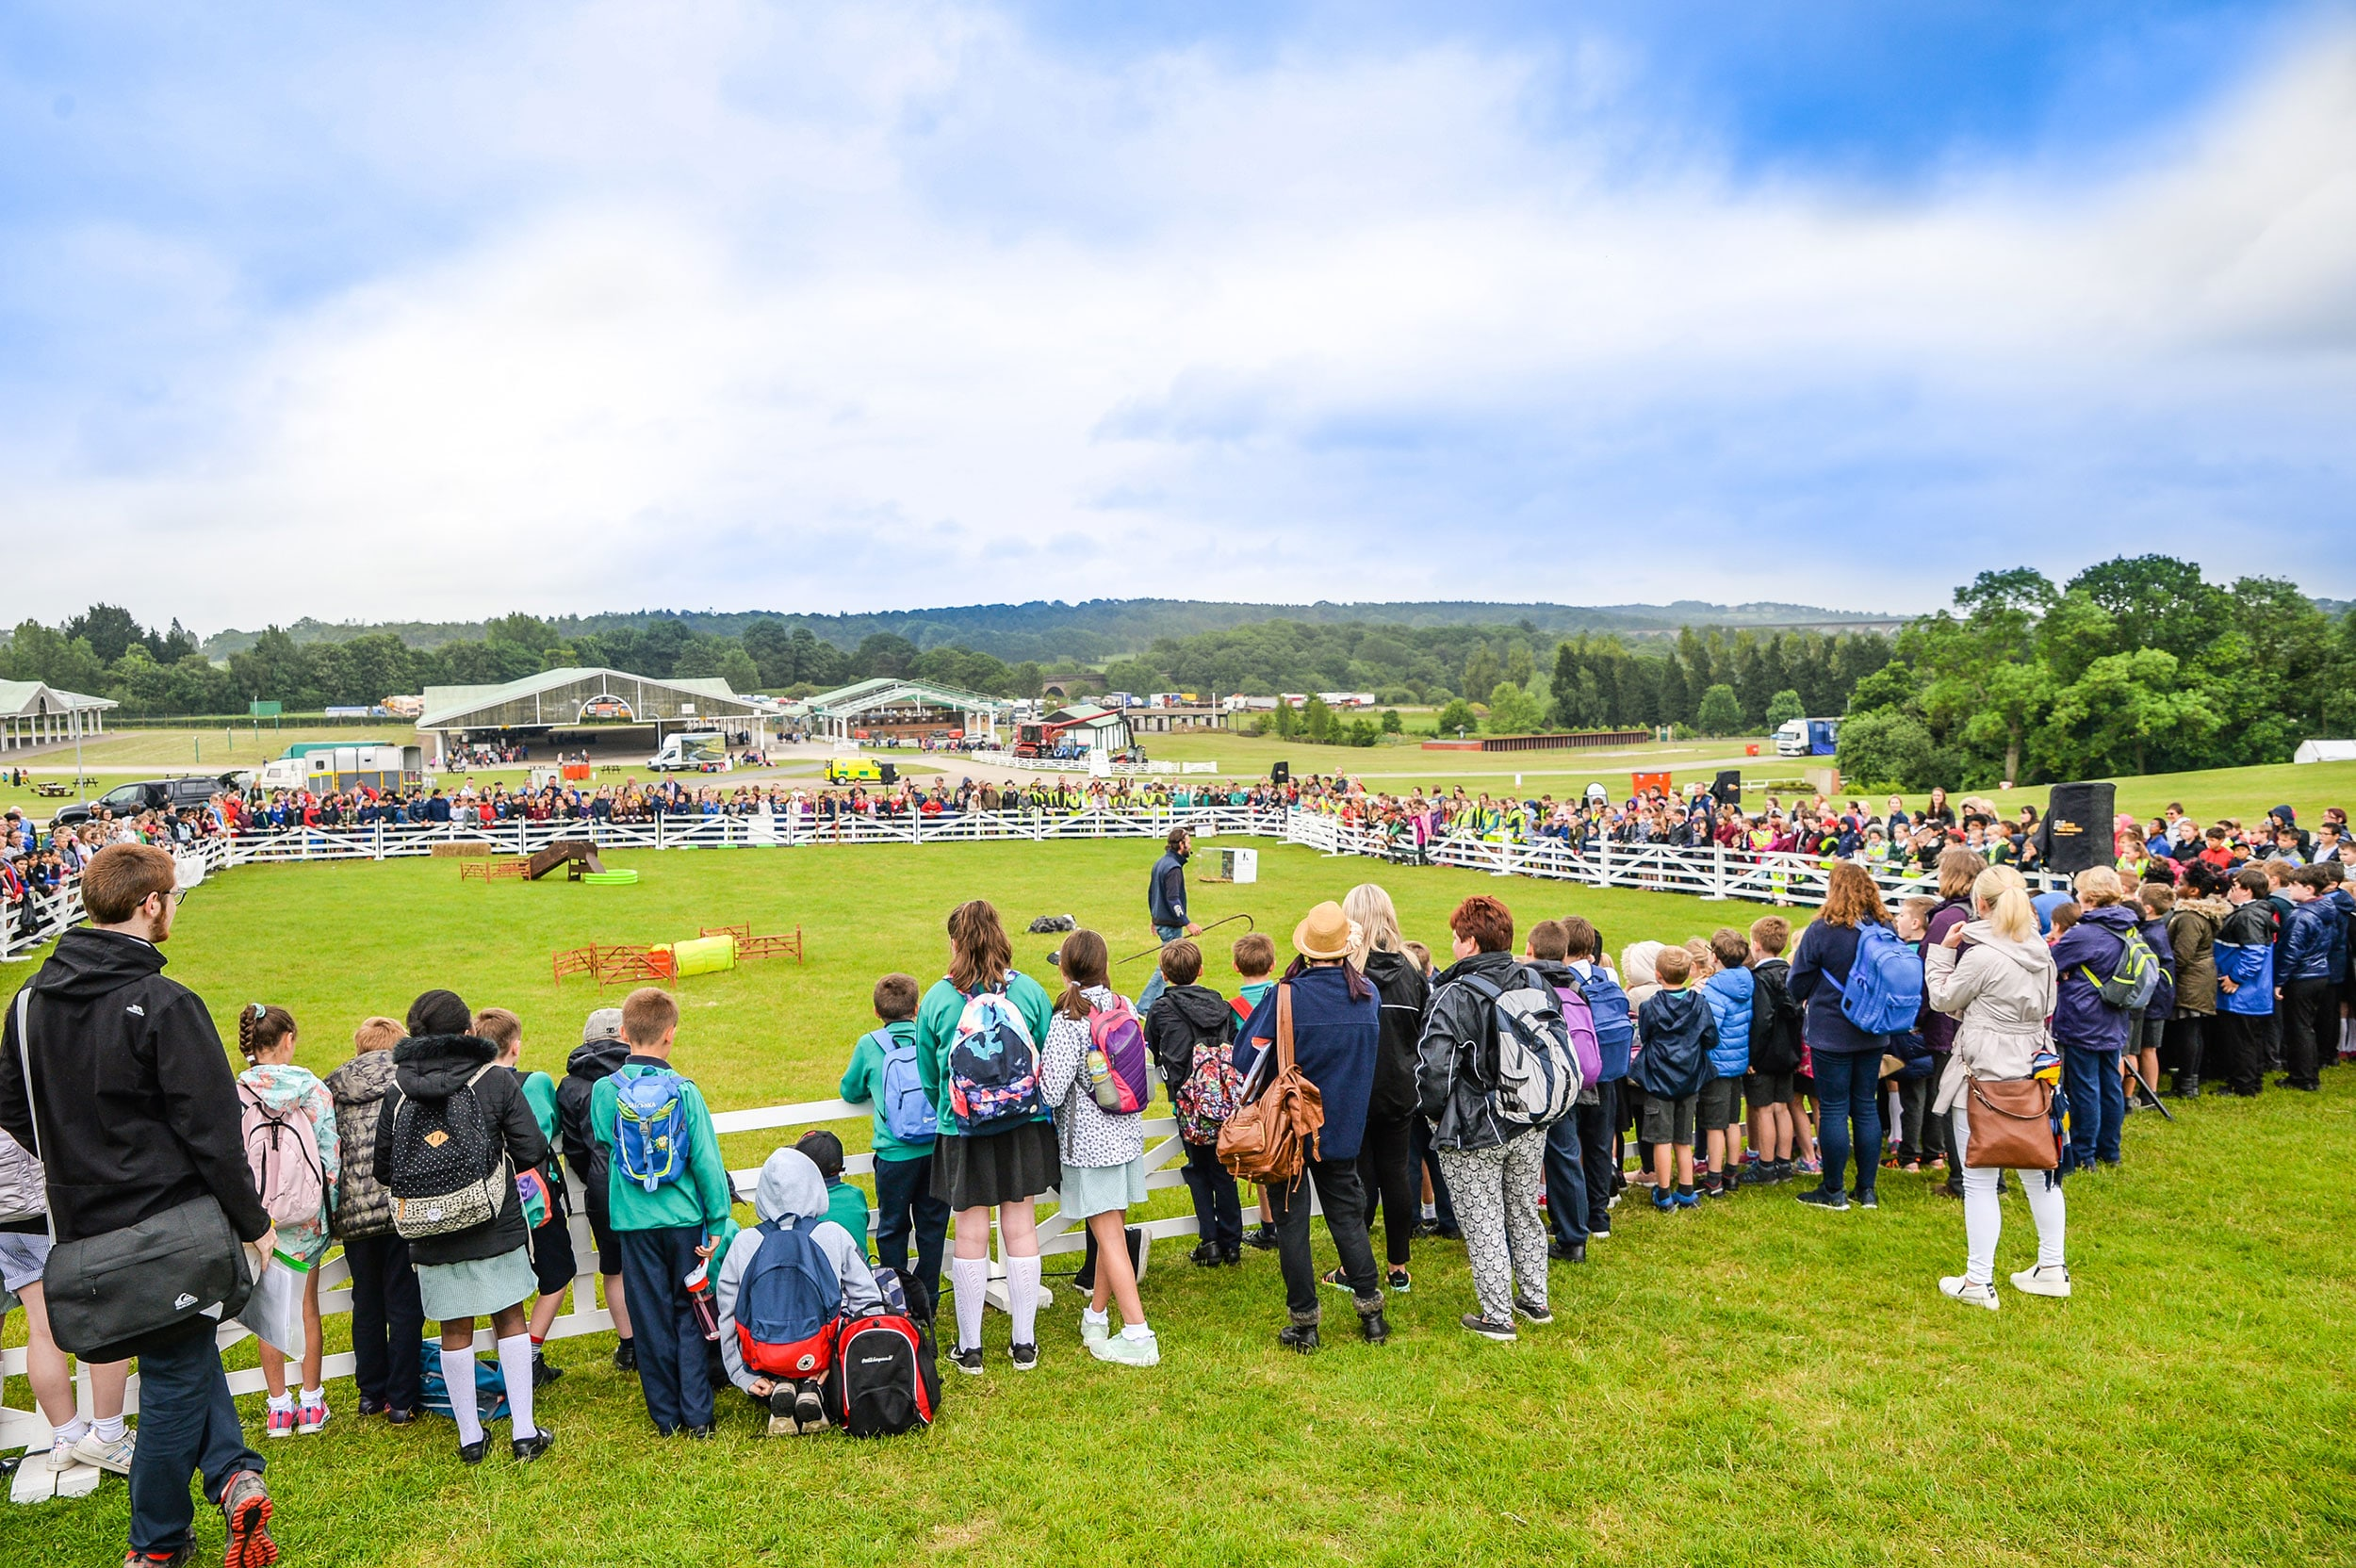 Countryside Days at the Great Yorkshire Showground organised by the Yorkshire Agricultural Society